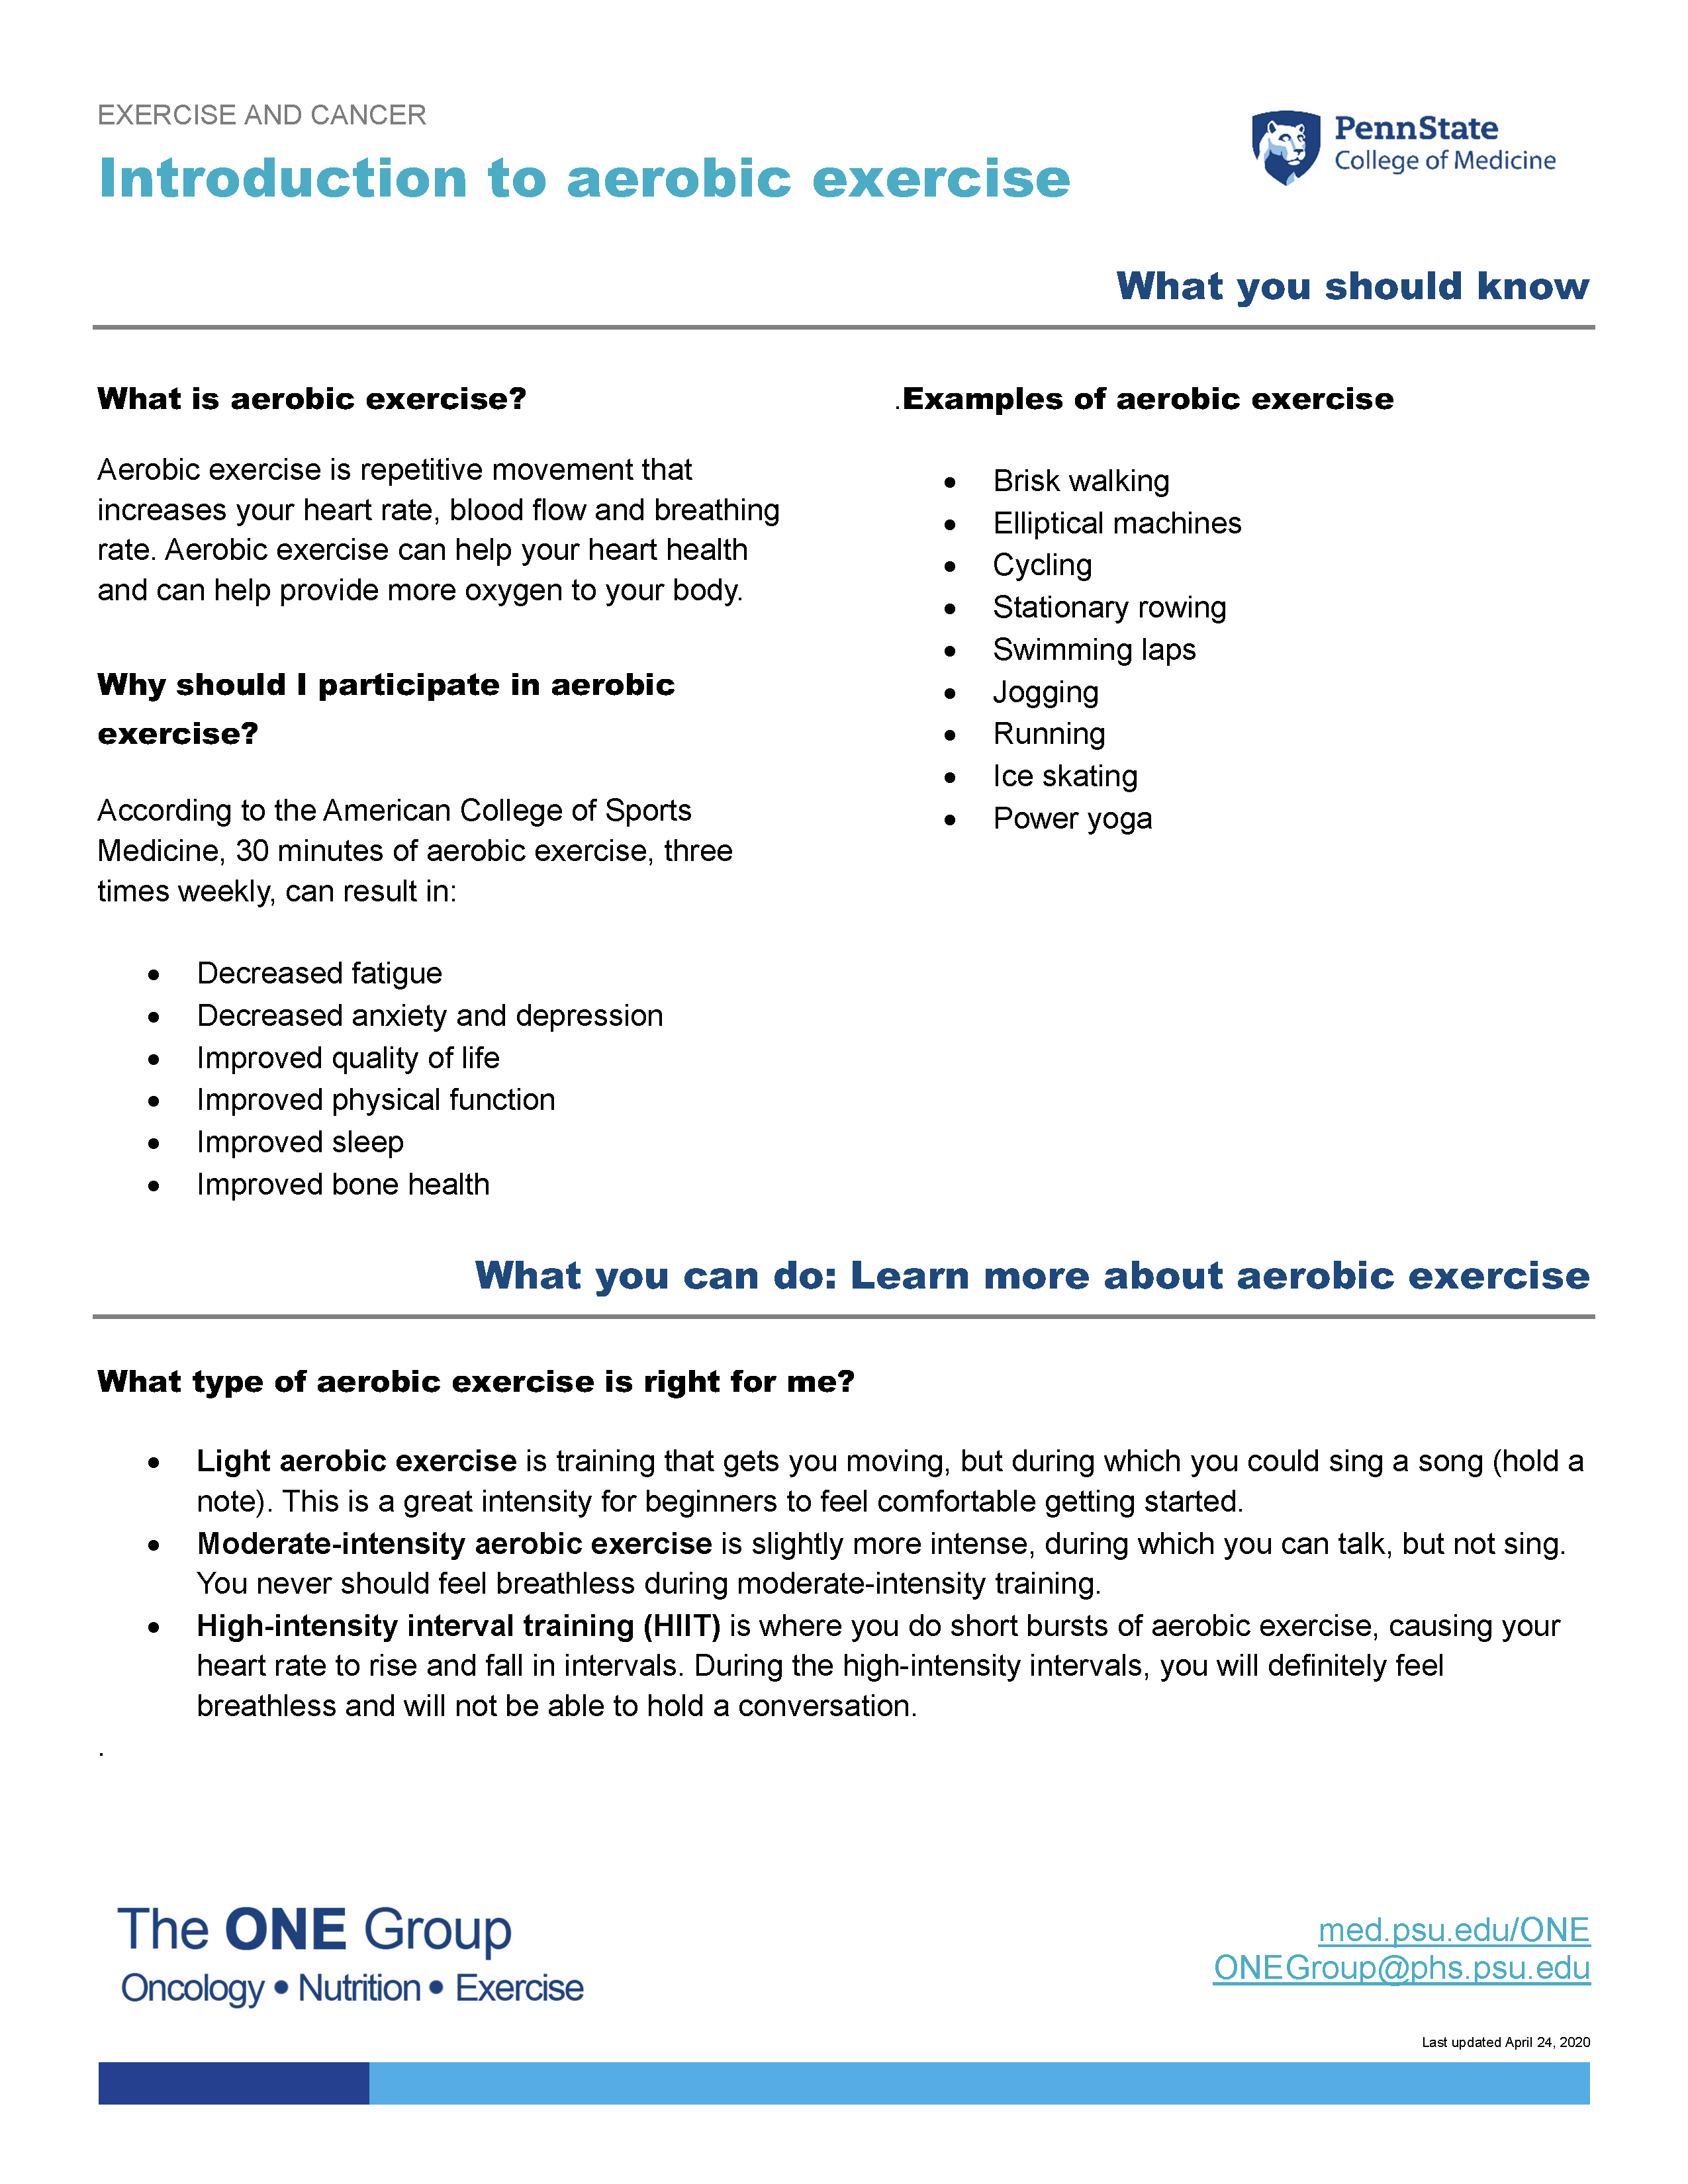 The introduction to aerobic exercise guide from The ONE Group includes the information on this page, formatted for print.